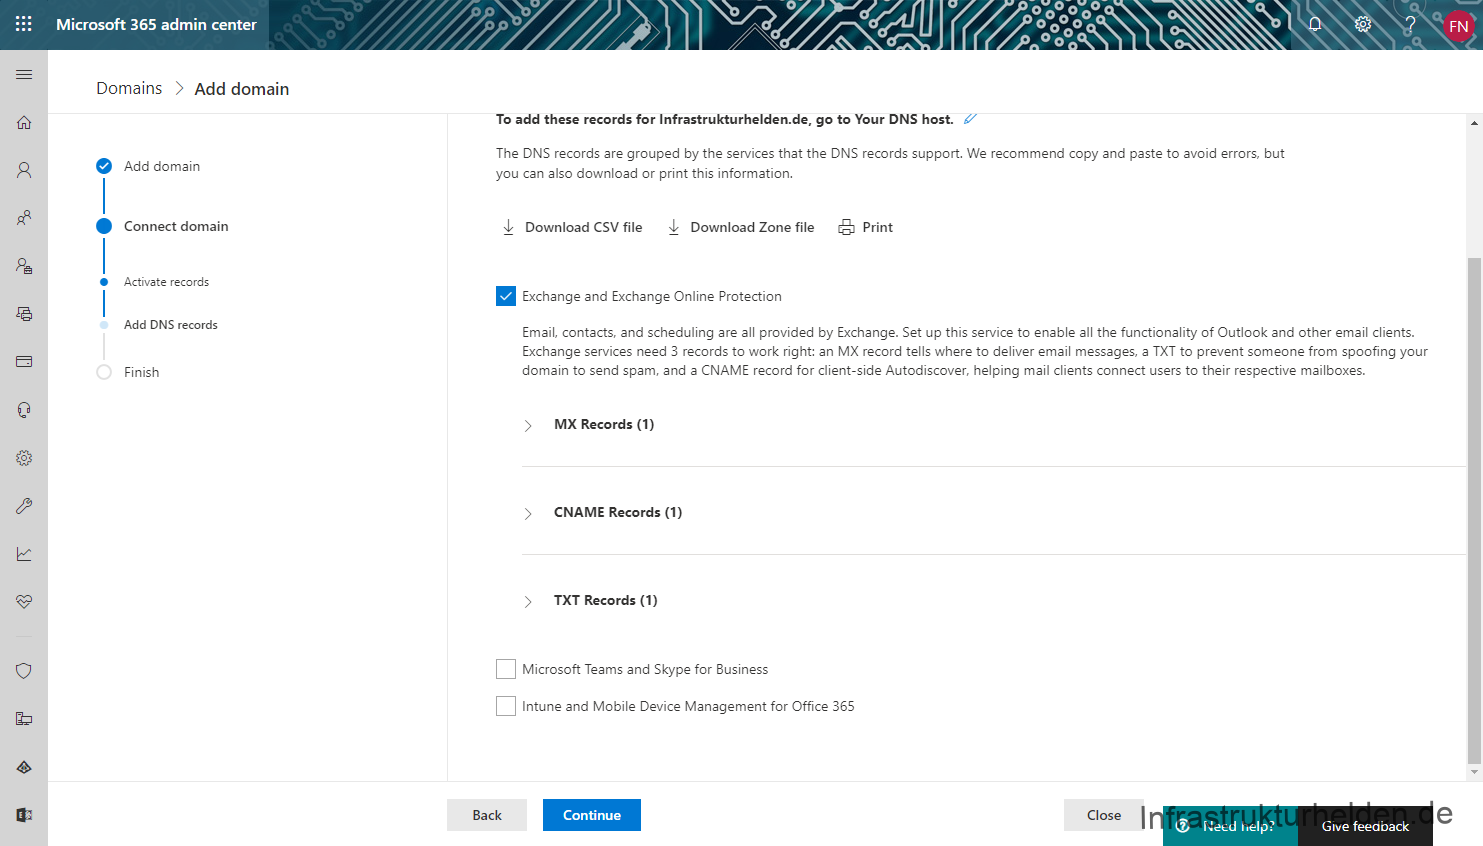 Microsoft 365 admin center > Domains > Add domain > DNS Records